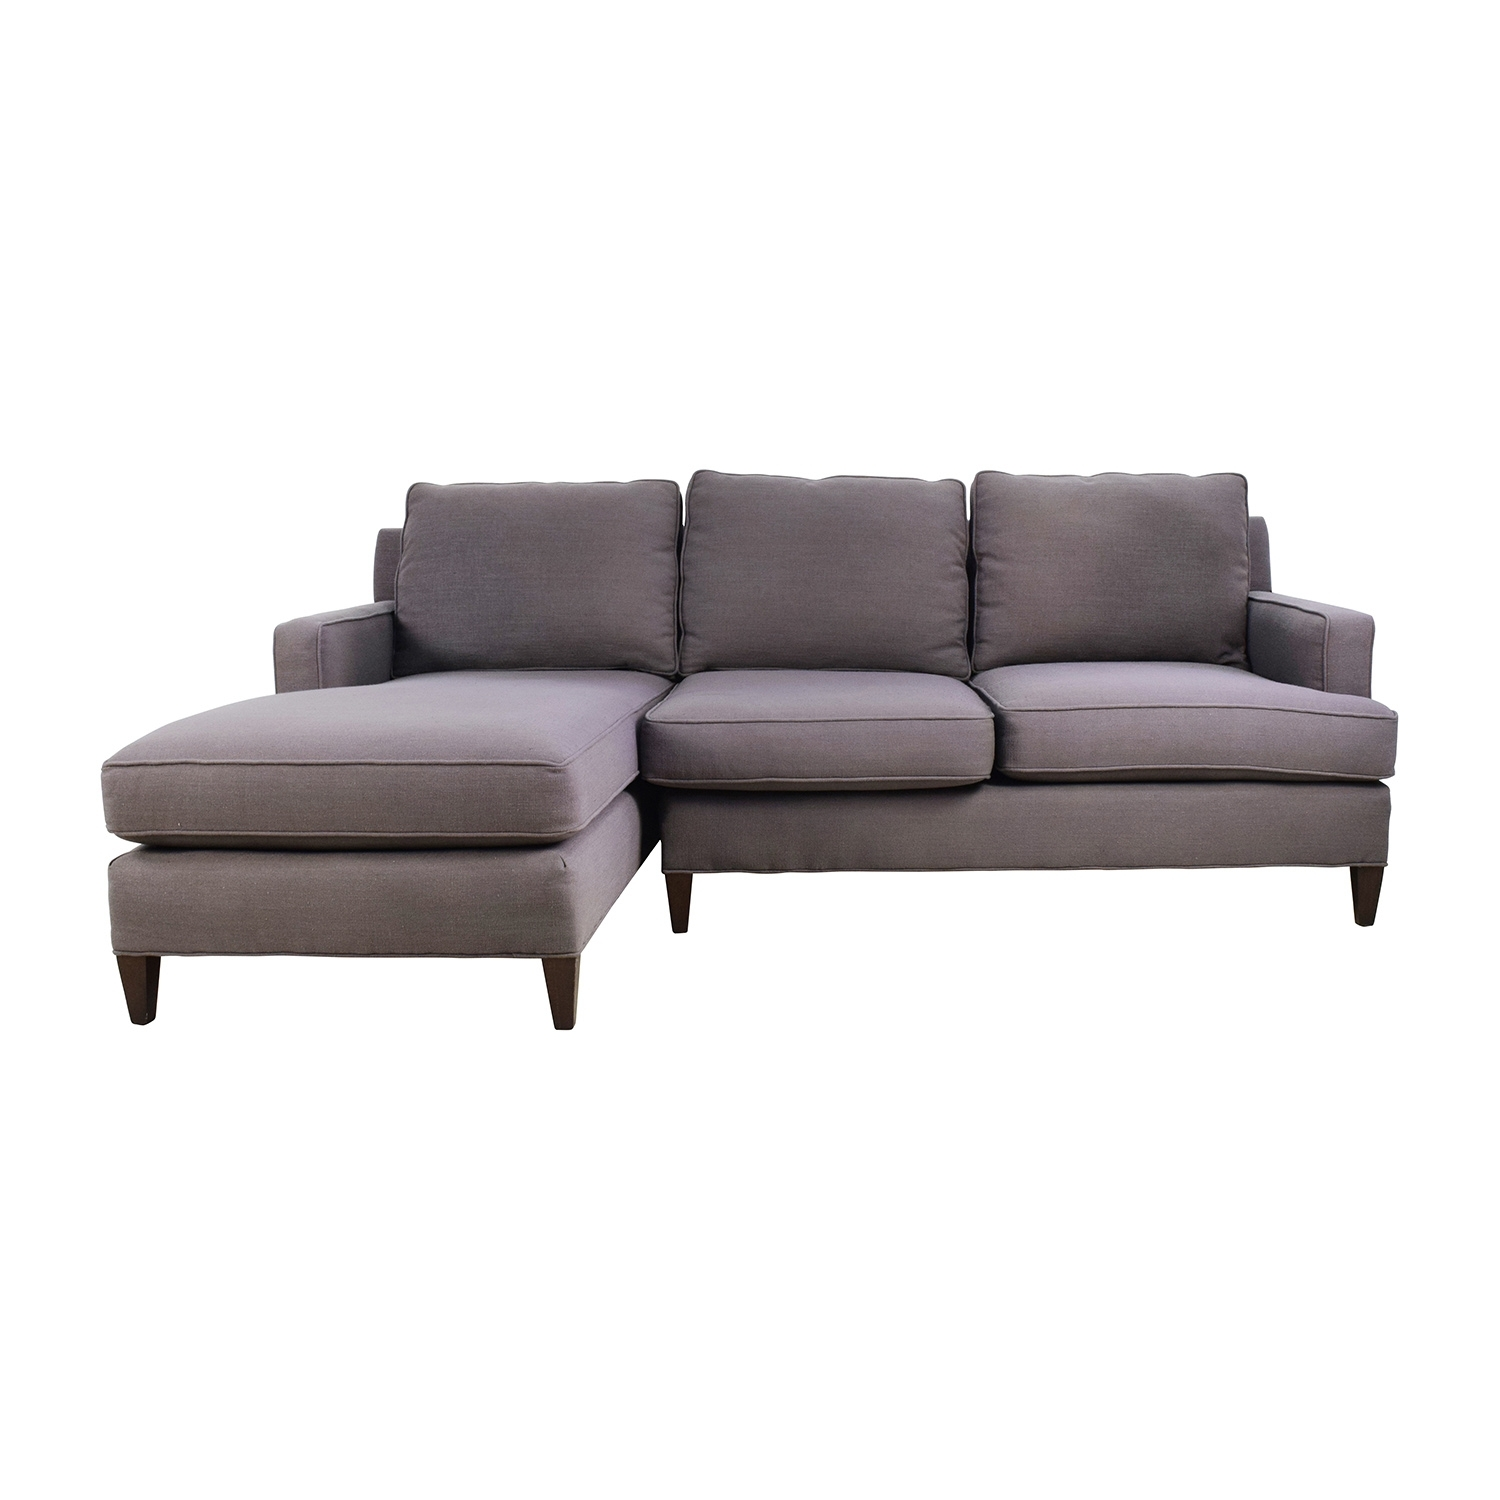 81% Off   Mitchell Gold & Bob Williams Mitchell Gold + Bob Williams For Charlotte Sectional Sofas (Photo 9 of 10)